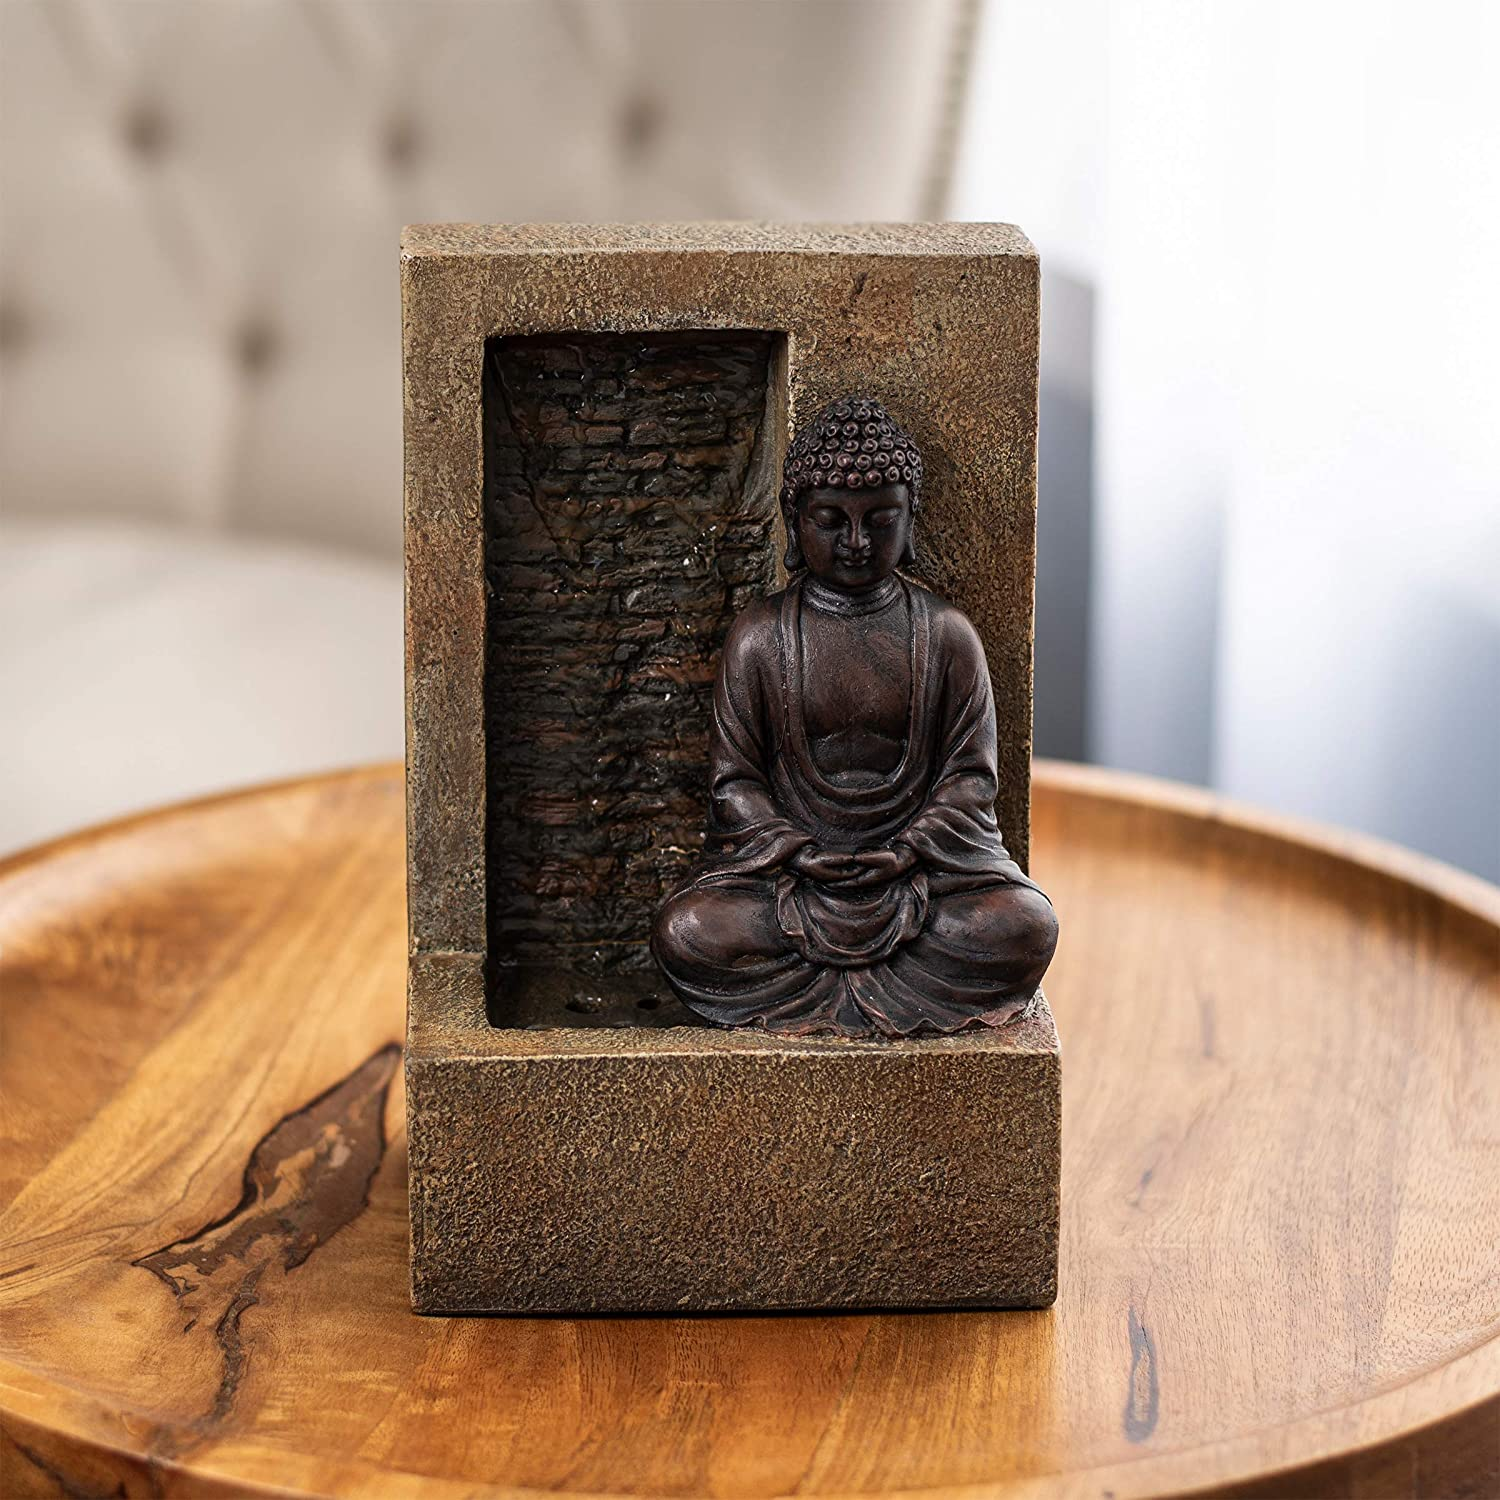 Pure Garden 50-LG5070 Tabletop Water Fountain-Sitting Buddha Statue by a Stone Wall Waterfall, Electric Pump & Soothing Sounds for Office and Home Décor